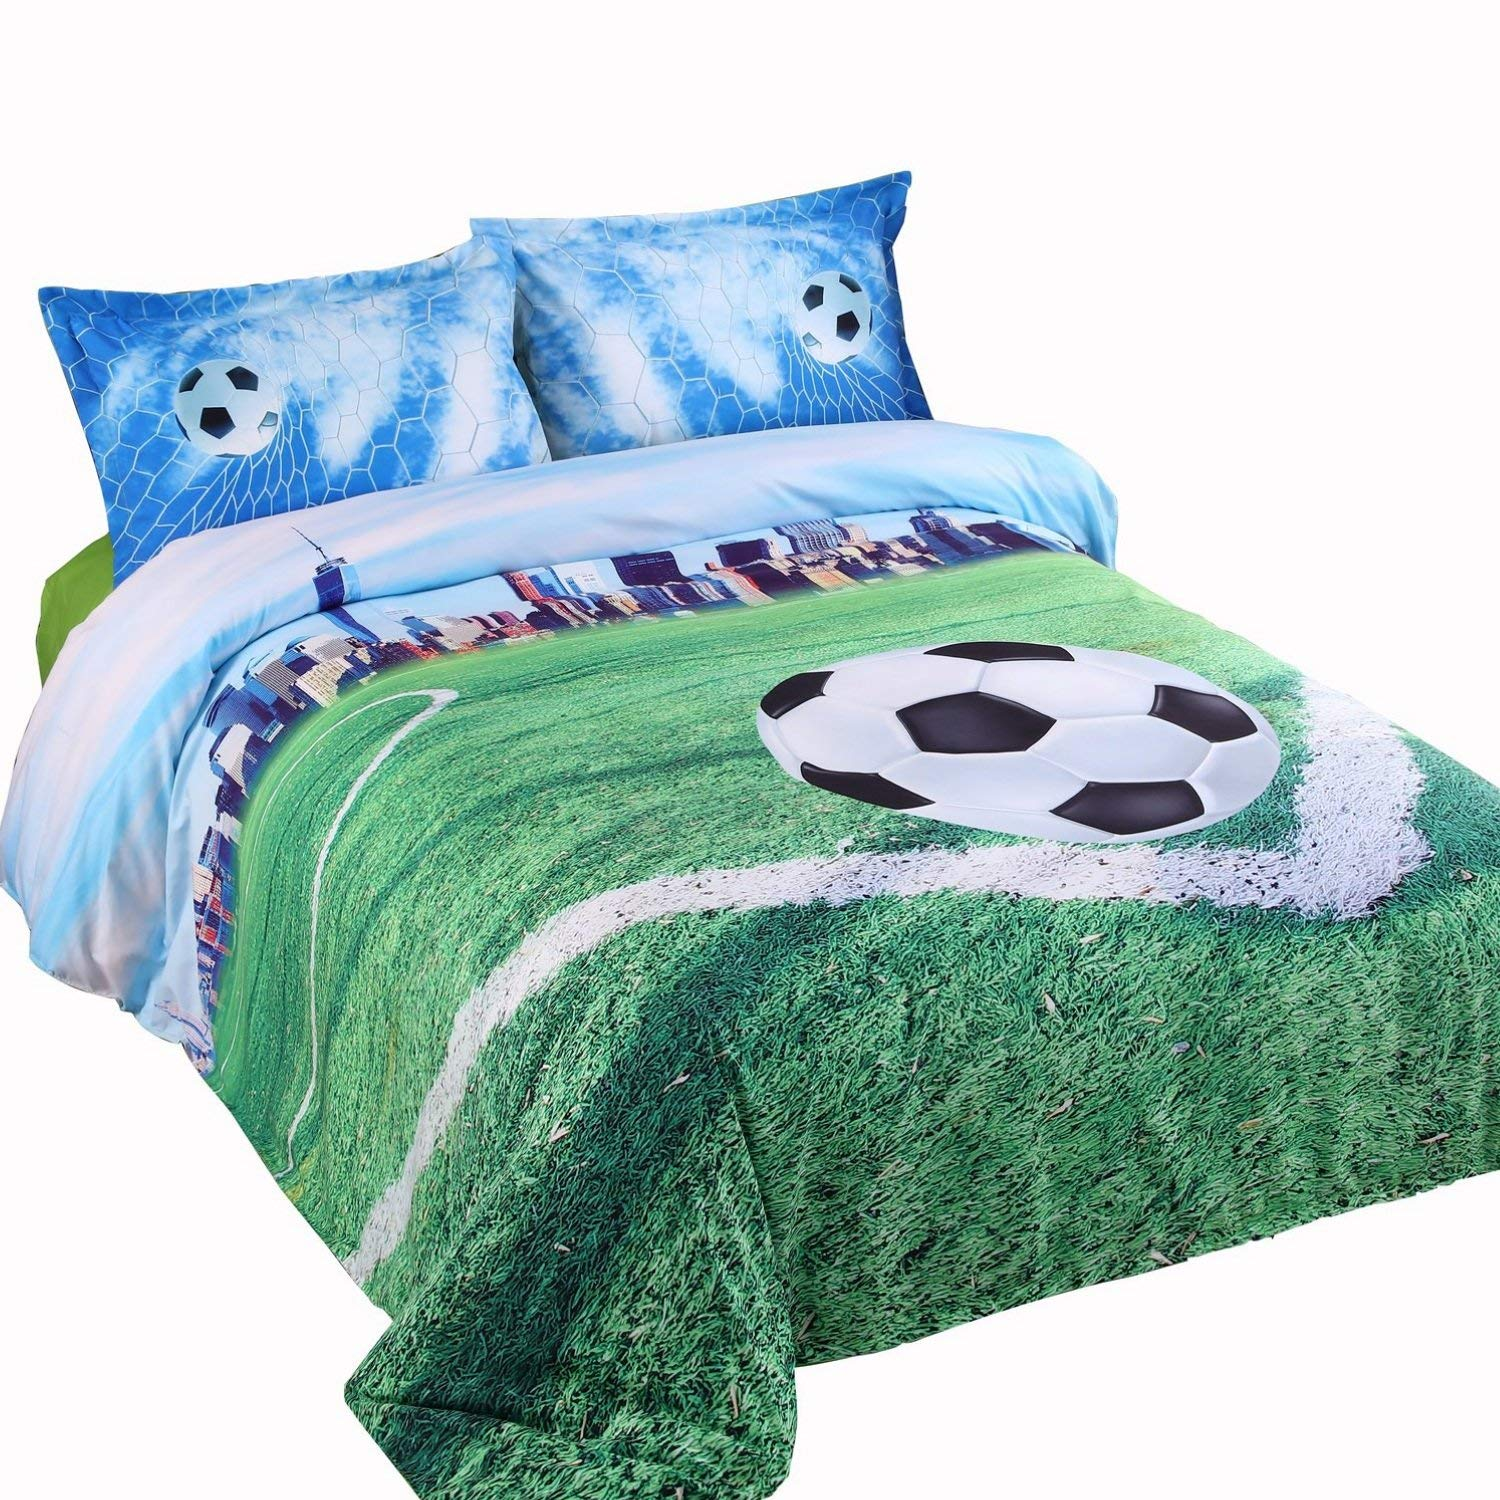 Alicemall 3D Soccer Bedding Football Field and City Scenery Printed Duvet Cover Set 4 Pieces Super Soft Cool Sports Bedding Set, Queen Size College Bedding (Queen, Light Blue)